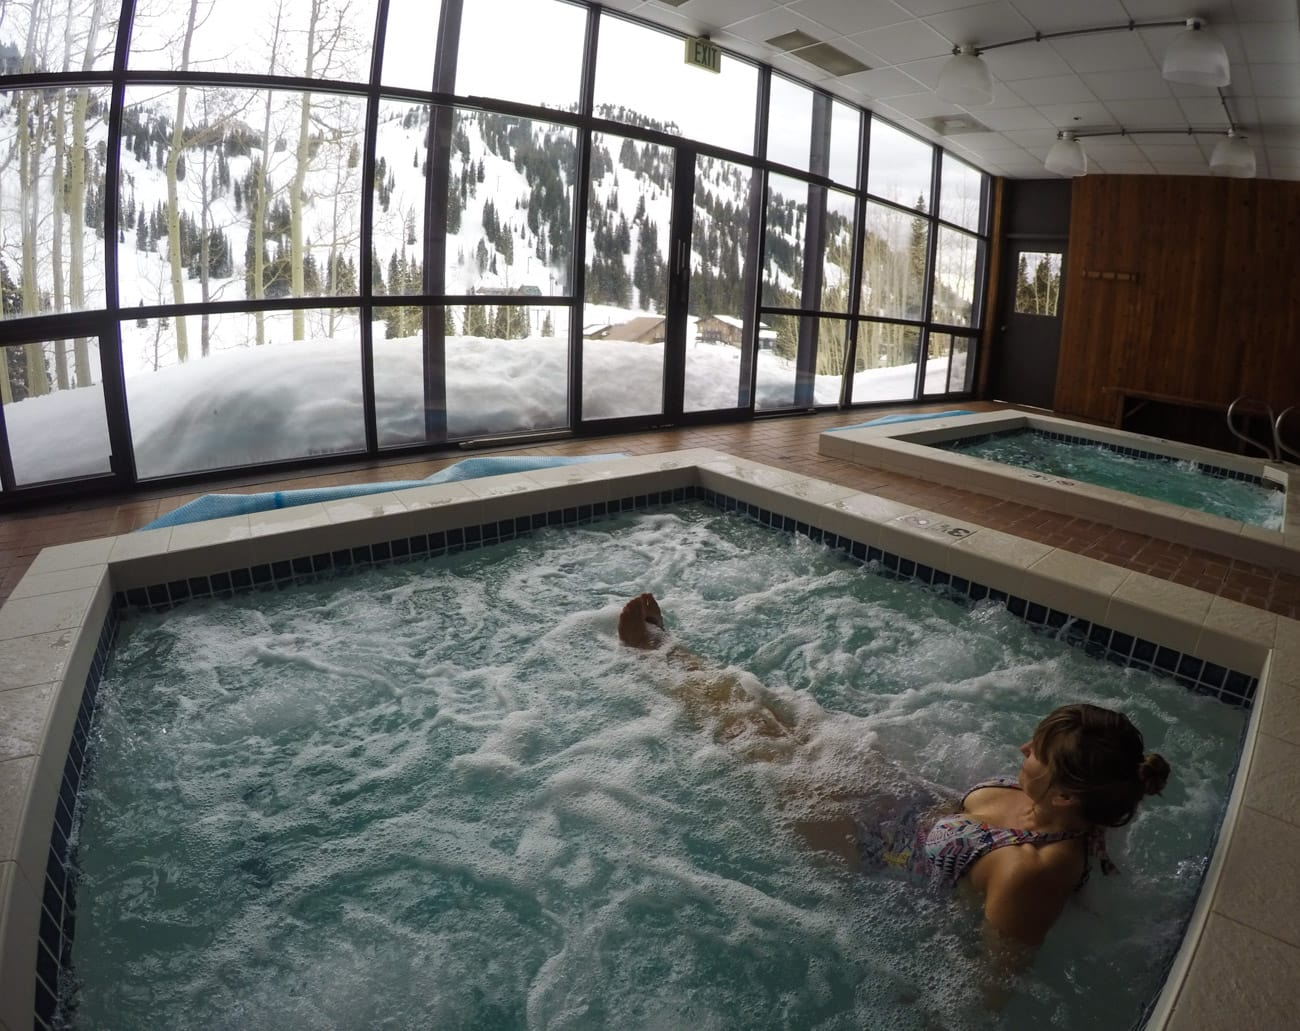 Amenities at the Alta Lodge include two indoor hot tubs